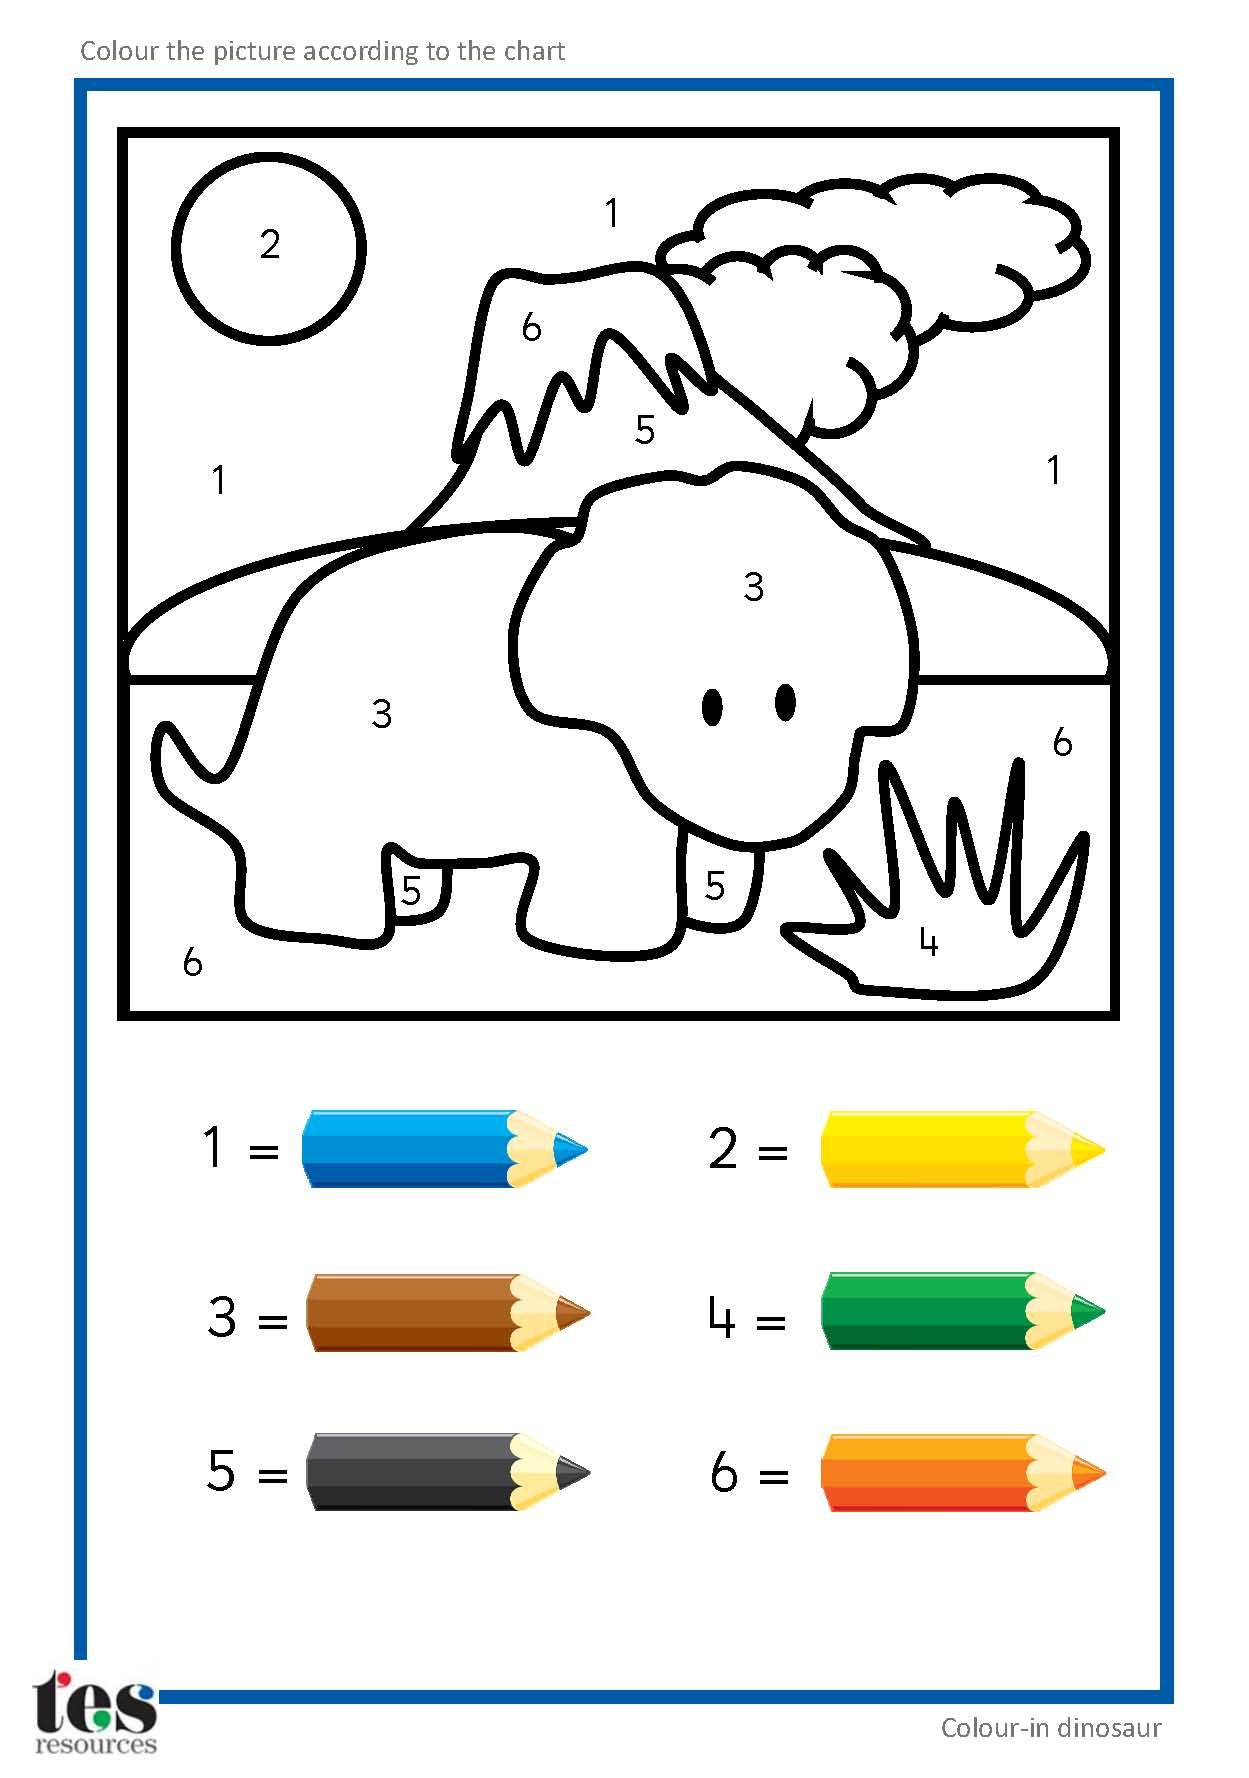 Colour By Numbers Teacch Activities Dinosaurs Teaching Resources Teacch Activities Dinosaurs Preschool Preschool Activities